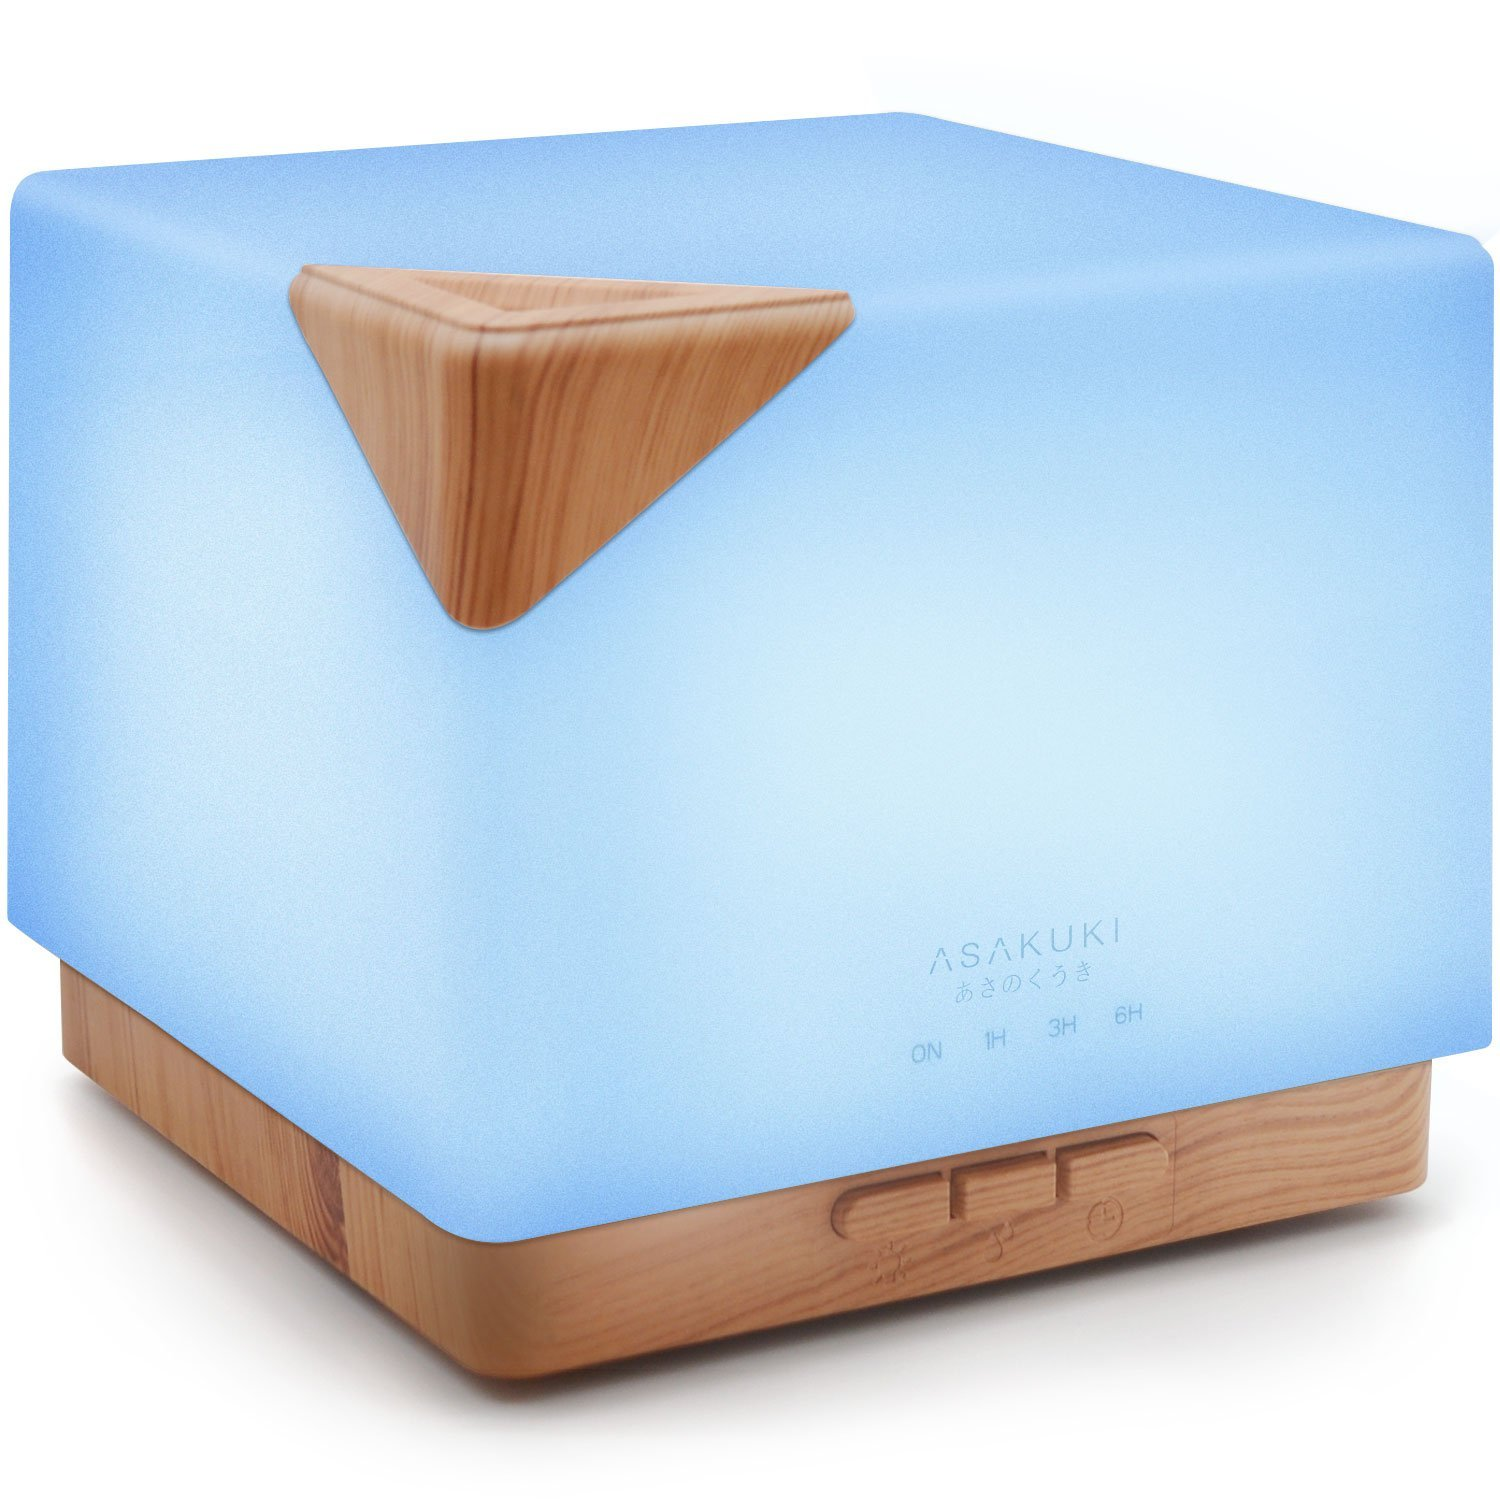 Asakuki Essential Oil Diffuser Black Friday Deal 2019